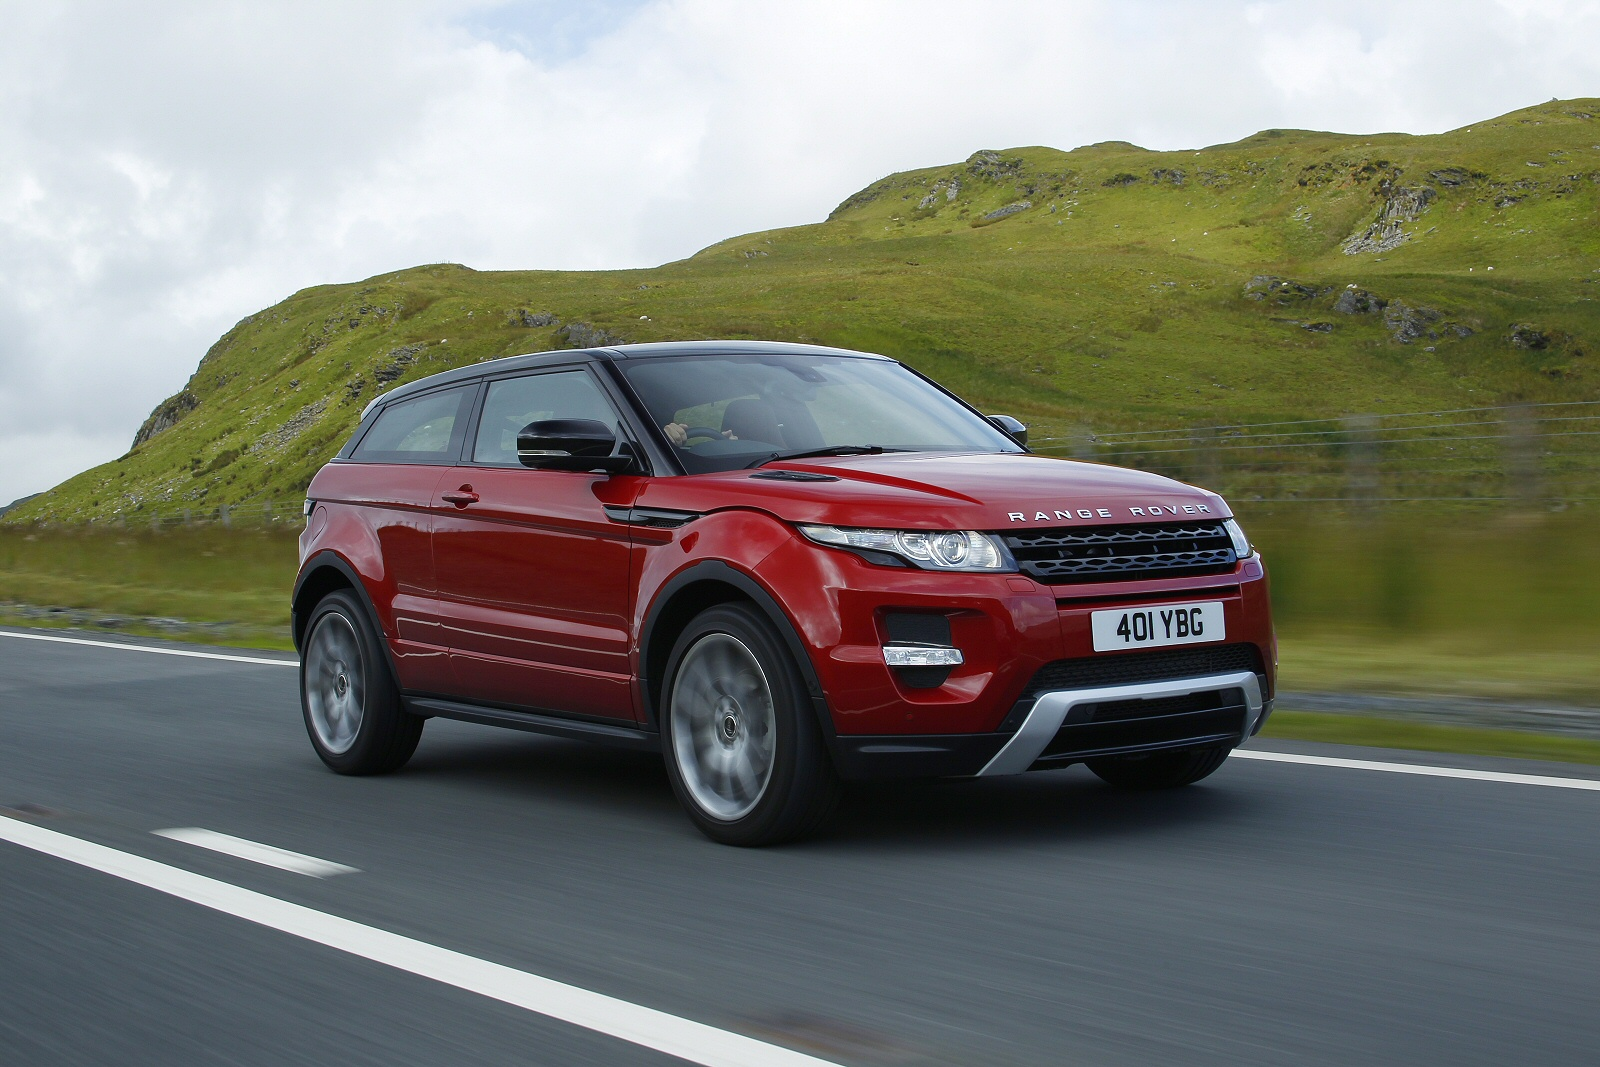 Rand Rover Evoque >> 'A DIFFERENT KIND OF SPORT' - Range Rover Evoque Coupe Range Independent New Review (Ref:11591)